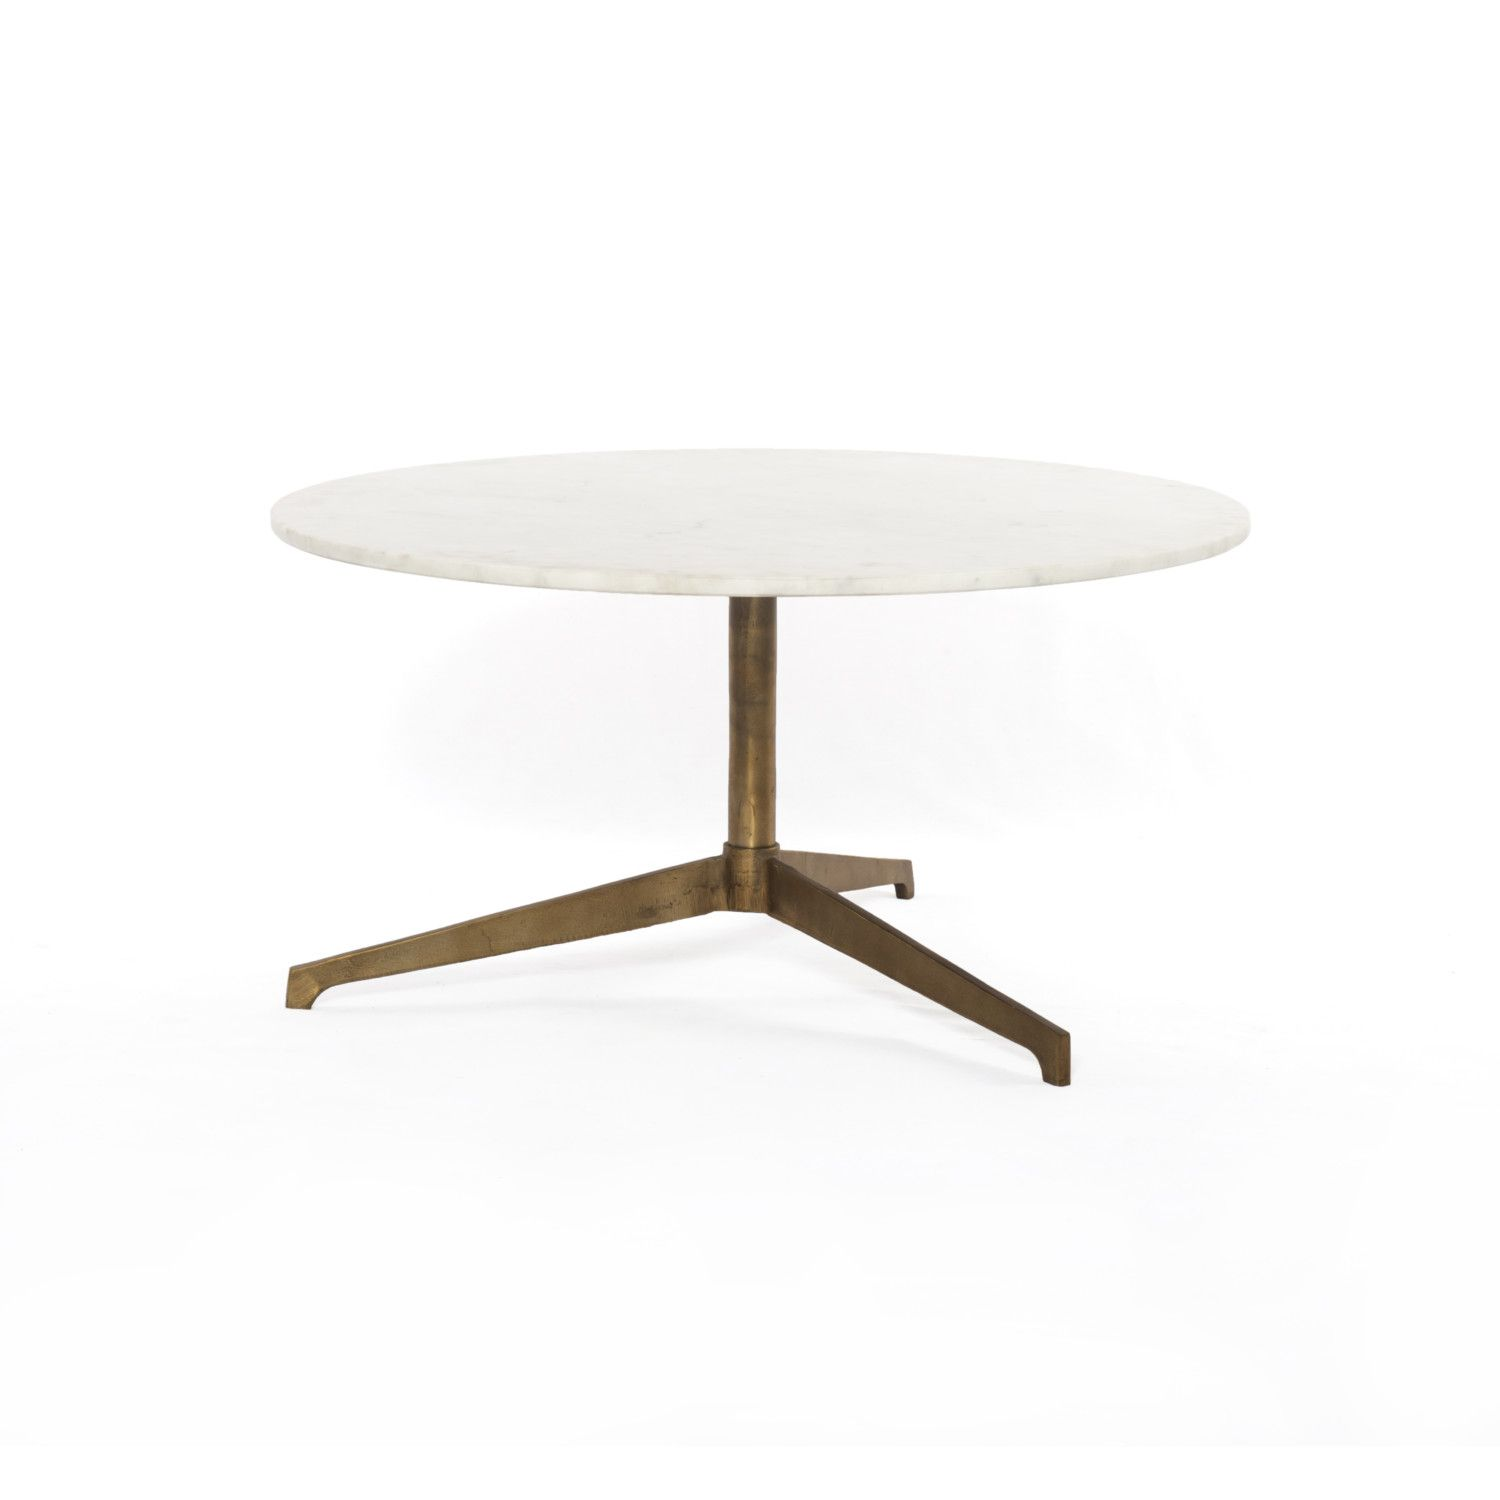 Alden Coffee Table Eclectic Goods Coffee Table Marble Round Coffee Table Round Coffee Table [ 1500 x 1500 Pixel ]